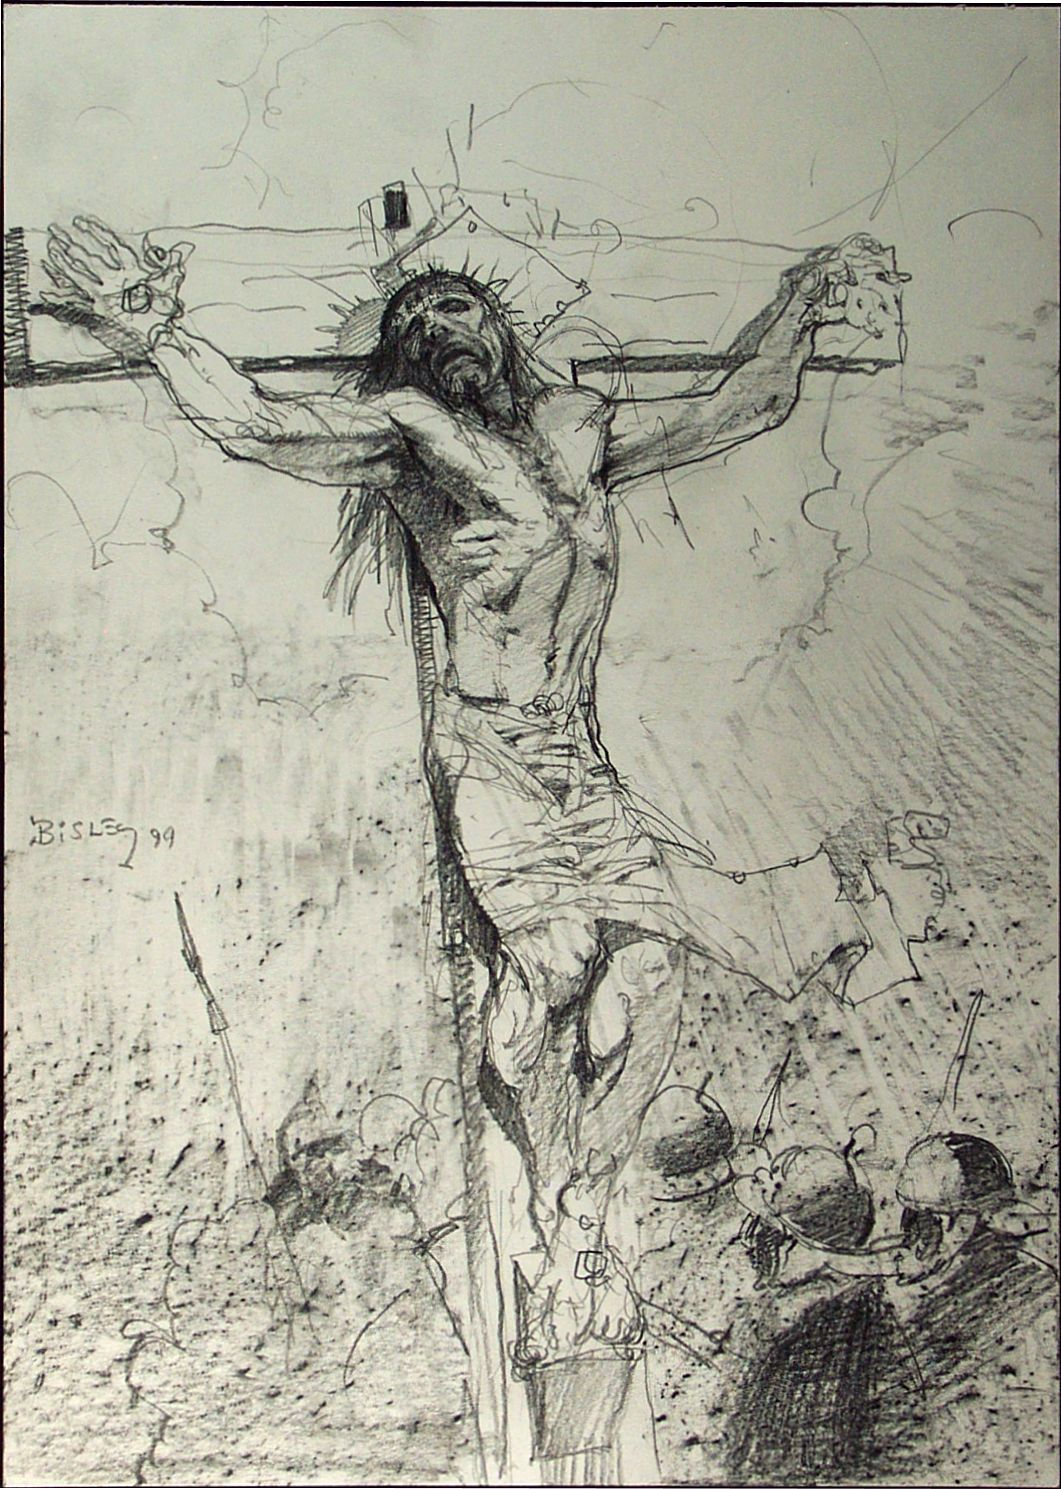 Passion of the christ in pencil 2557 crucifixion rough sketch item 2557 bisley simon pencil misc